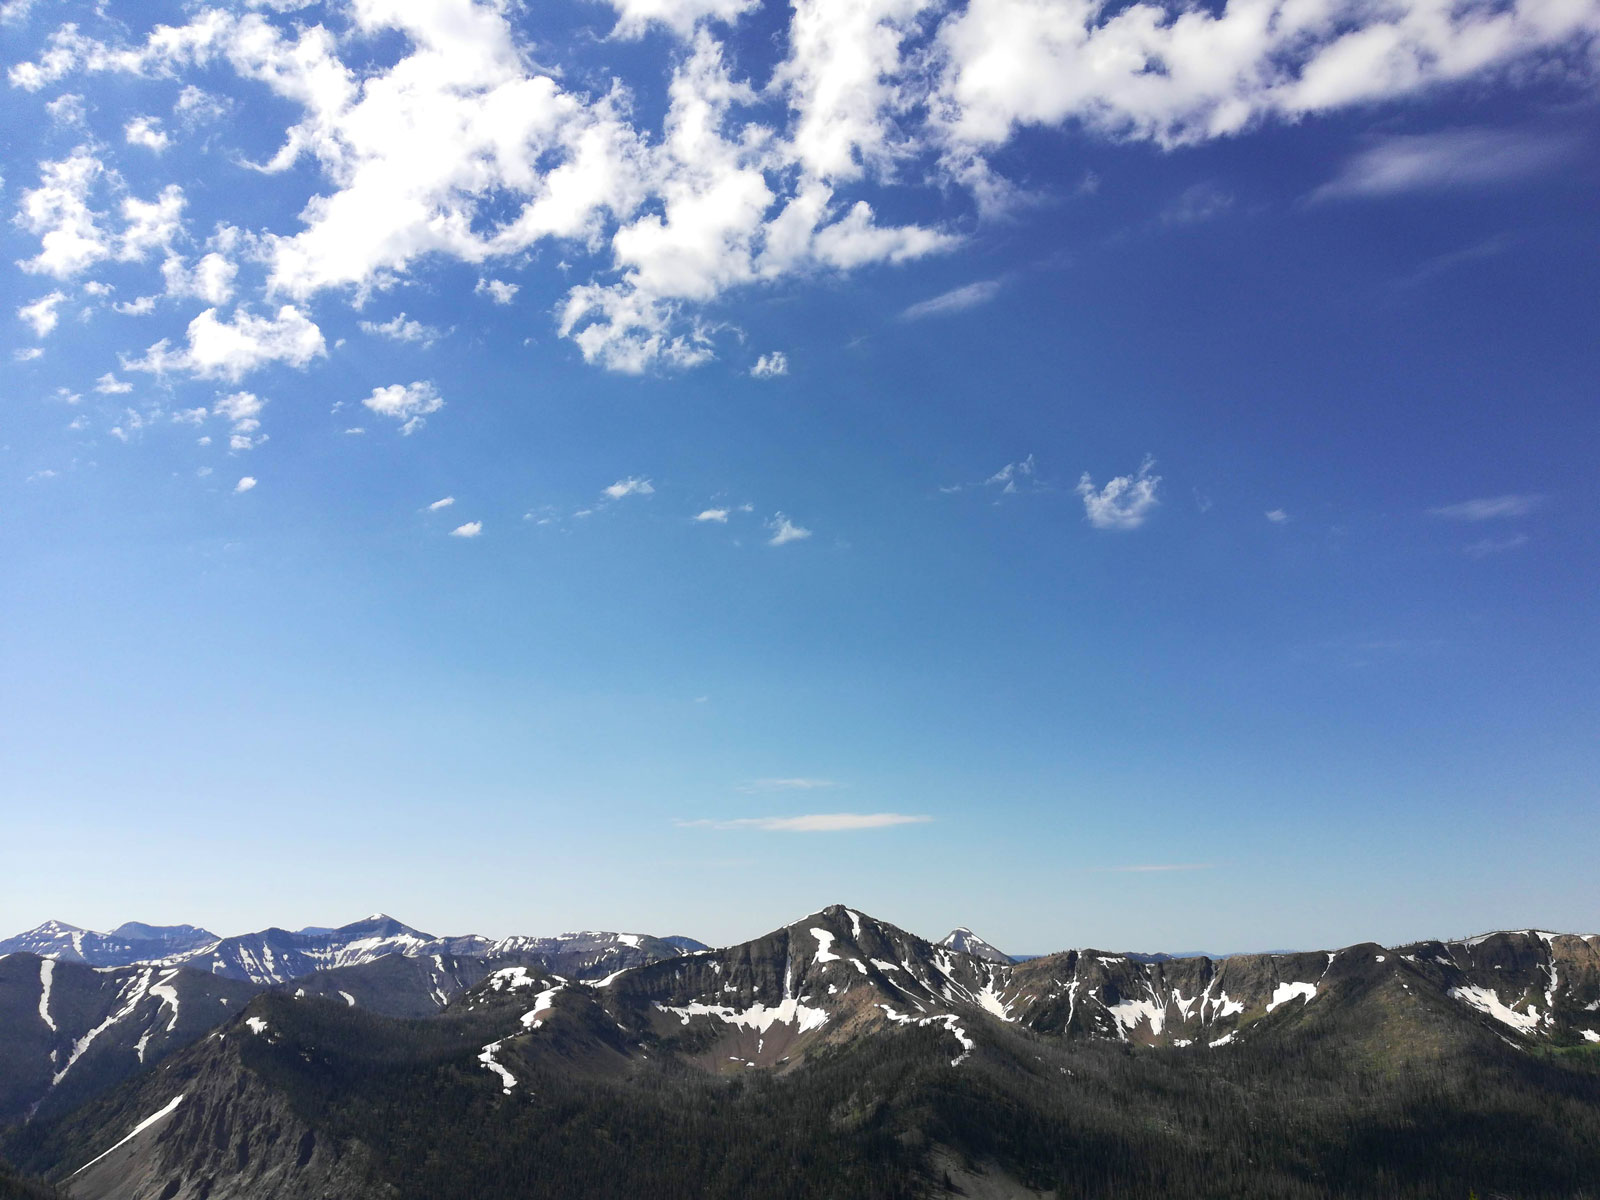 View from the top of Avalanche Peak in Yellowstone National Park